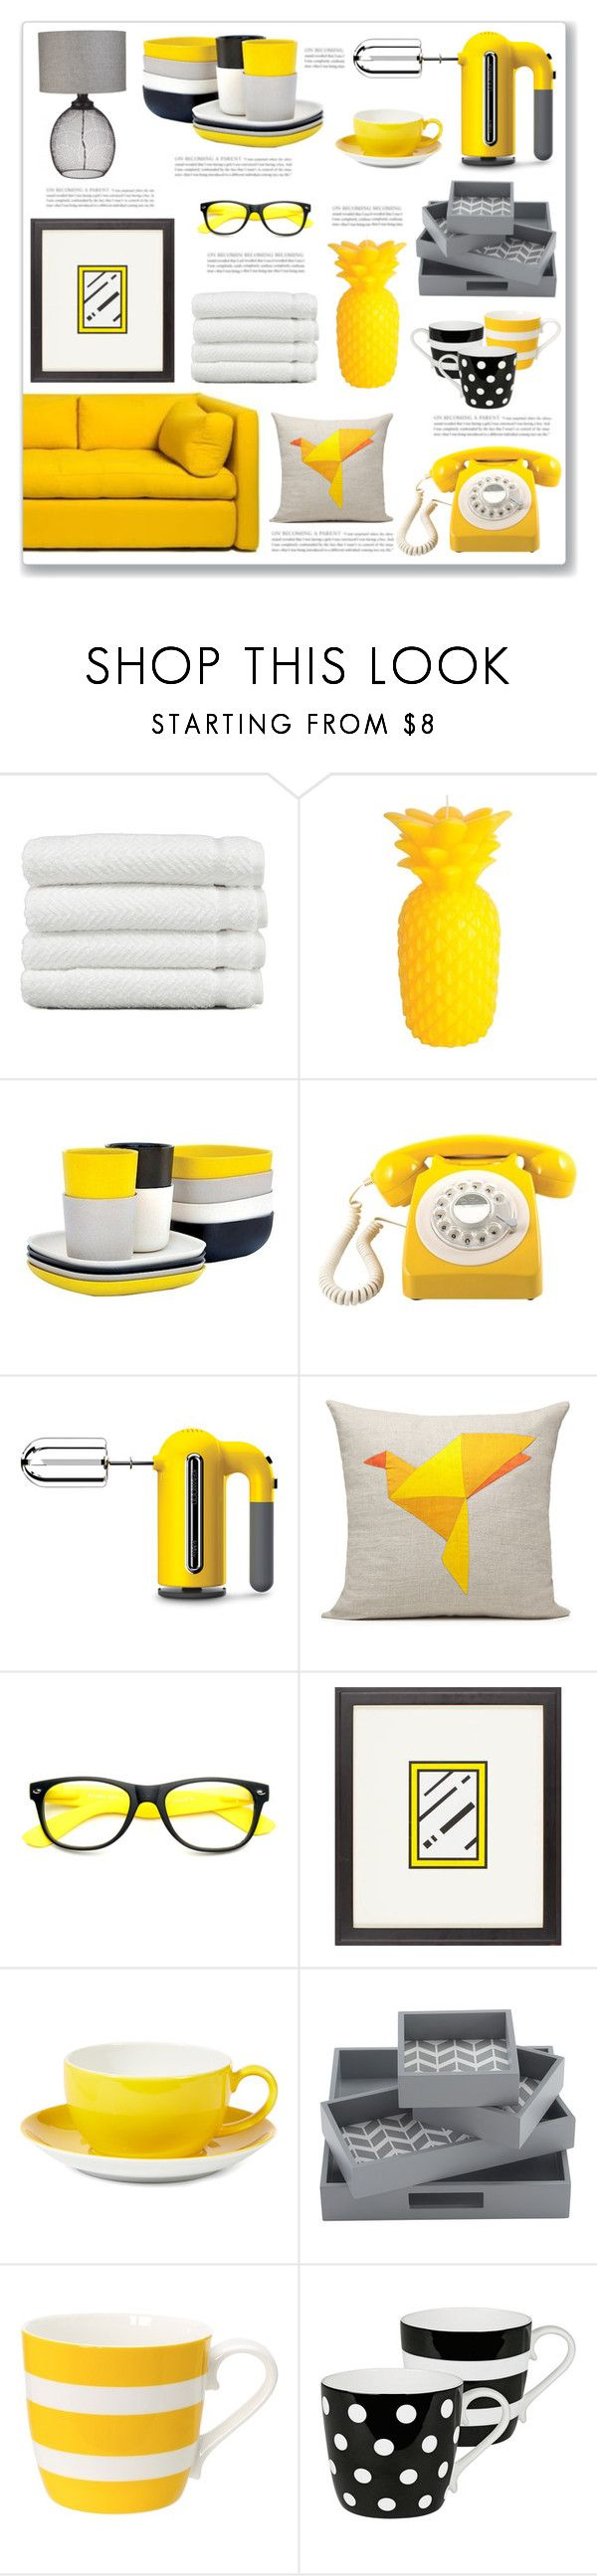 """""""Yellow Tea Party"""" by mmmartha ❤ liked on Polyvore featuring interior, interiors, interior design, home, home decor, interior decorating, Linum Home Textiles, Sunnylife, Ekobo and GPO"""